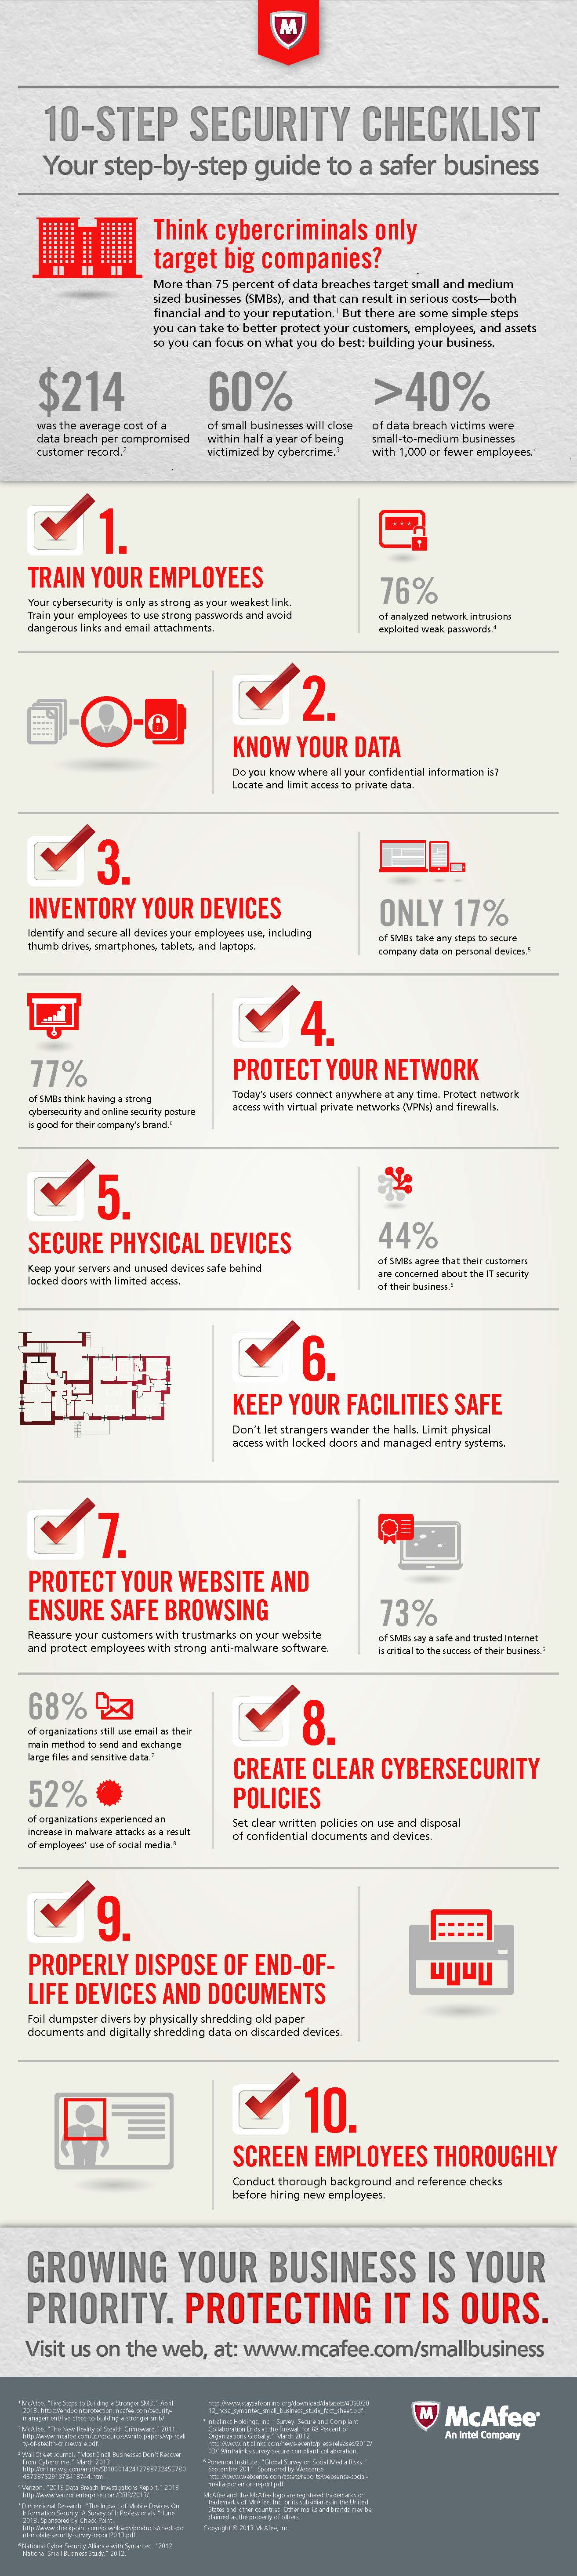 McAfee 10 Steps Infographic